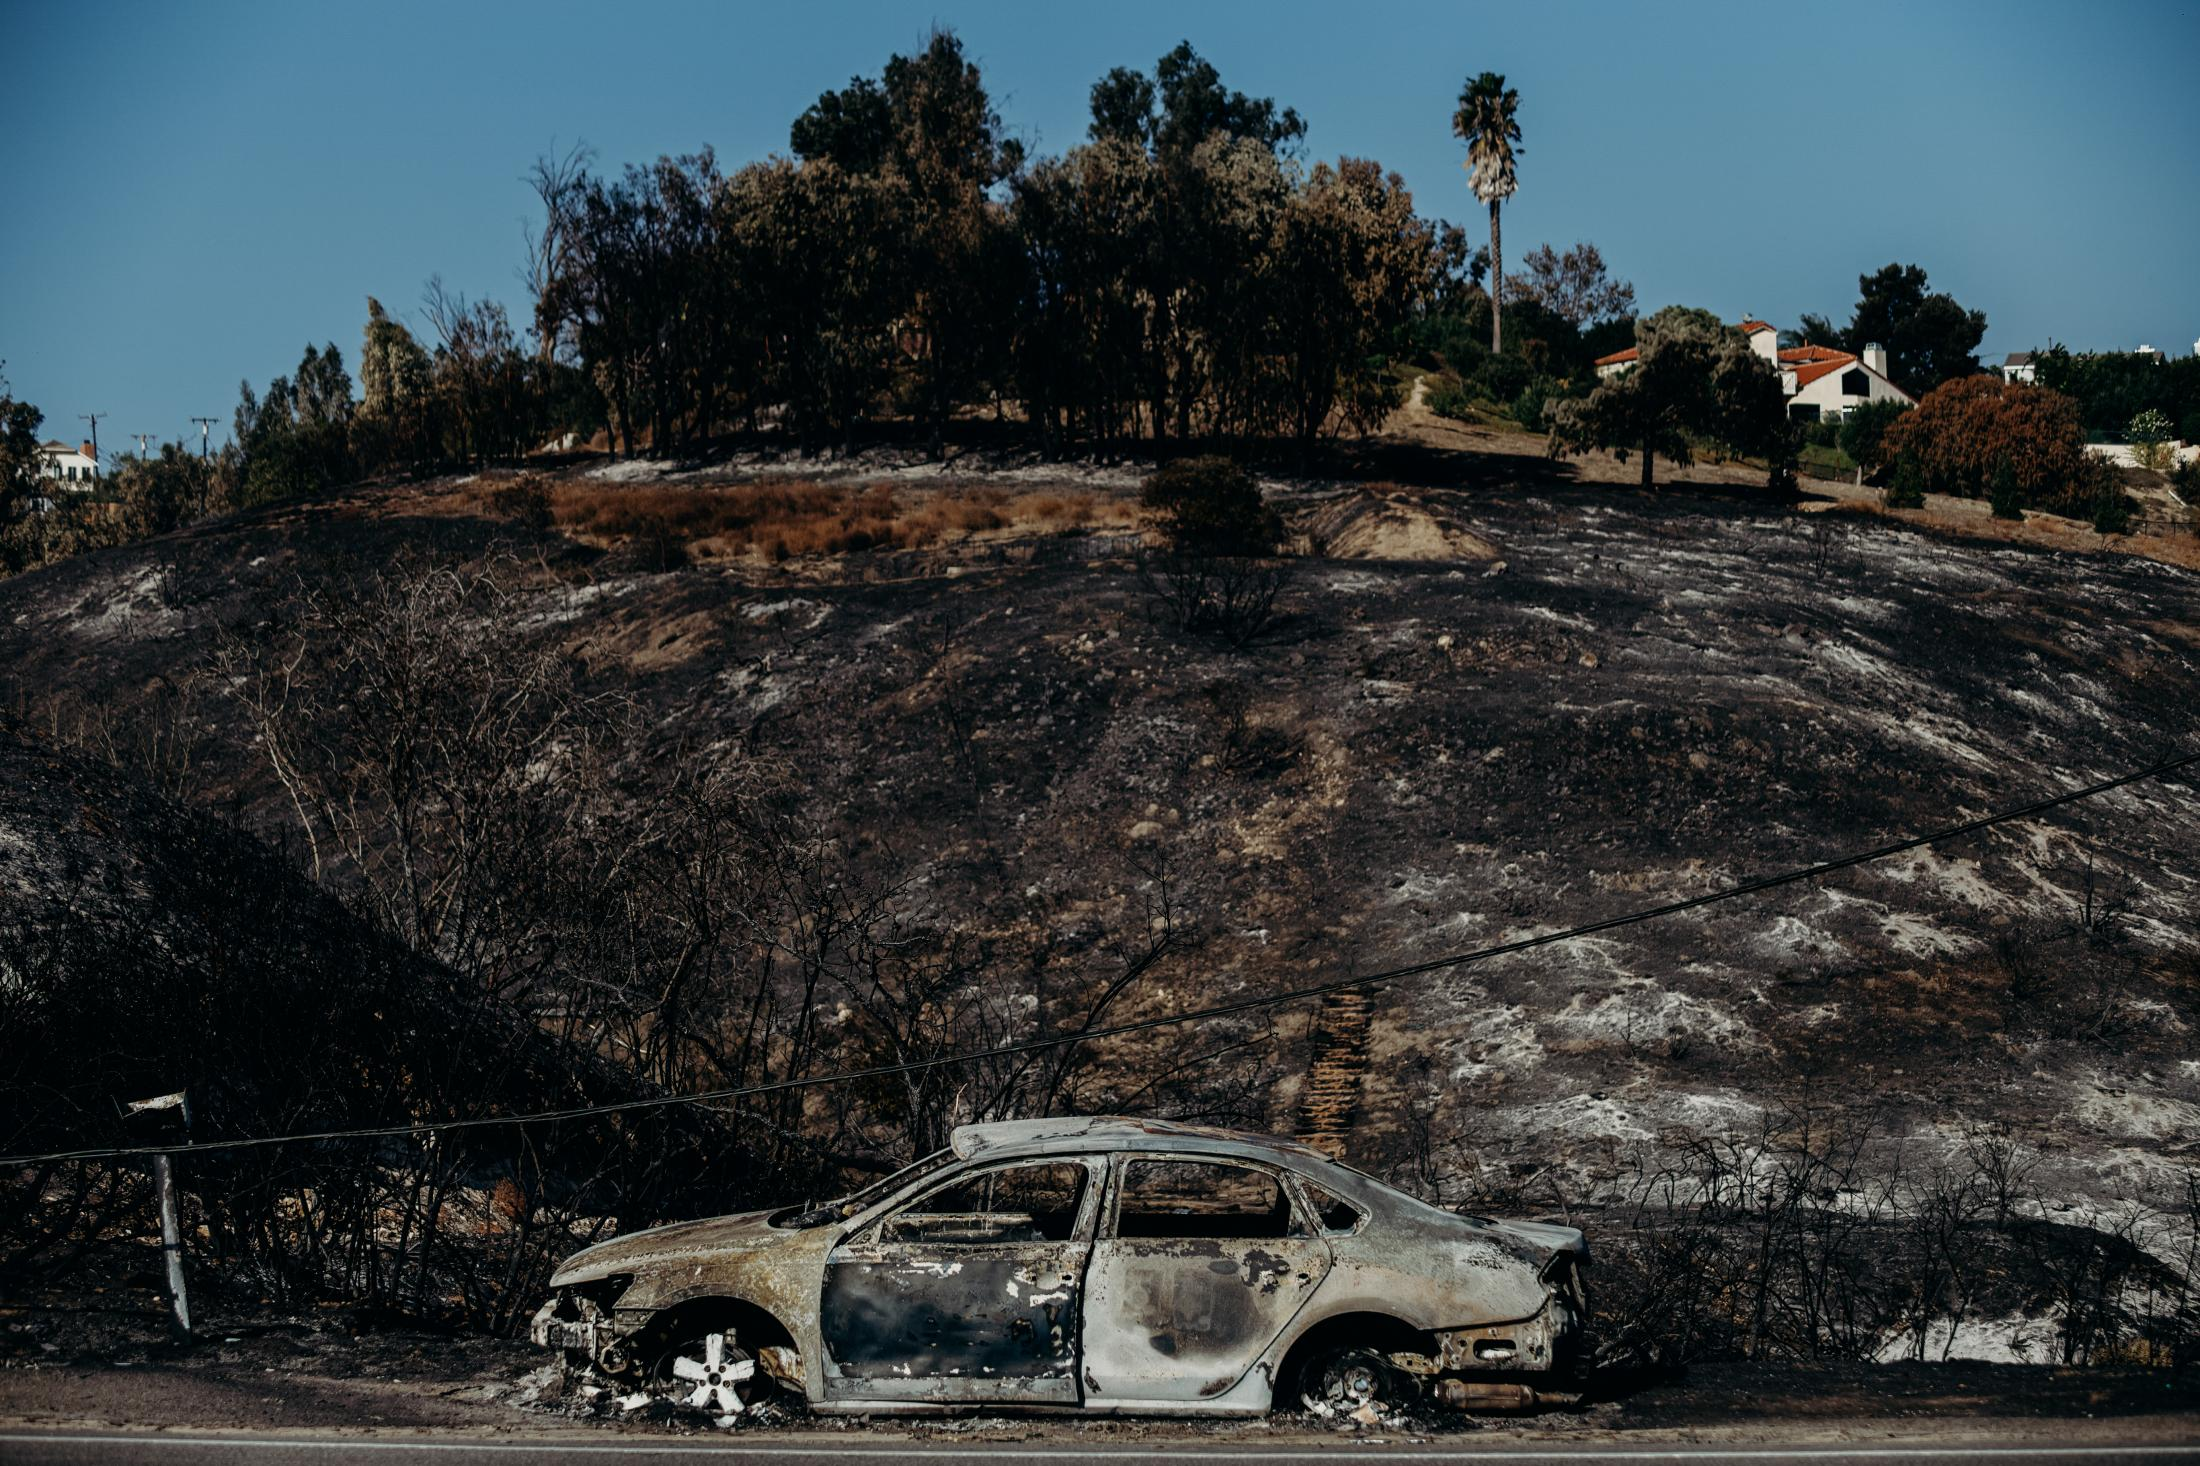 Three people reported to have died in the blaze, and over a quarter-million evacuated. A vehicle left on the side of the road is destroyed by a dangerous wildfire.